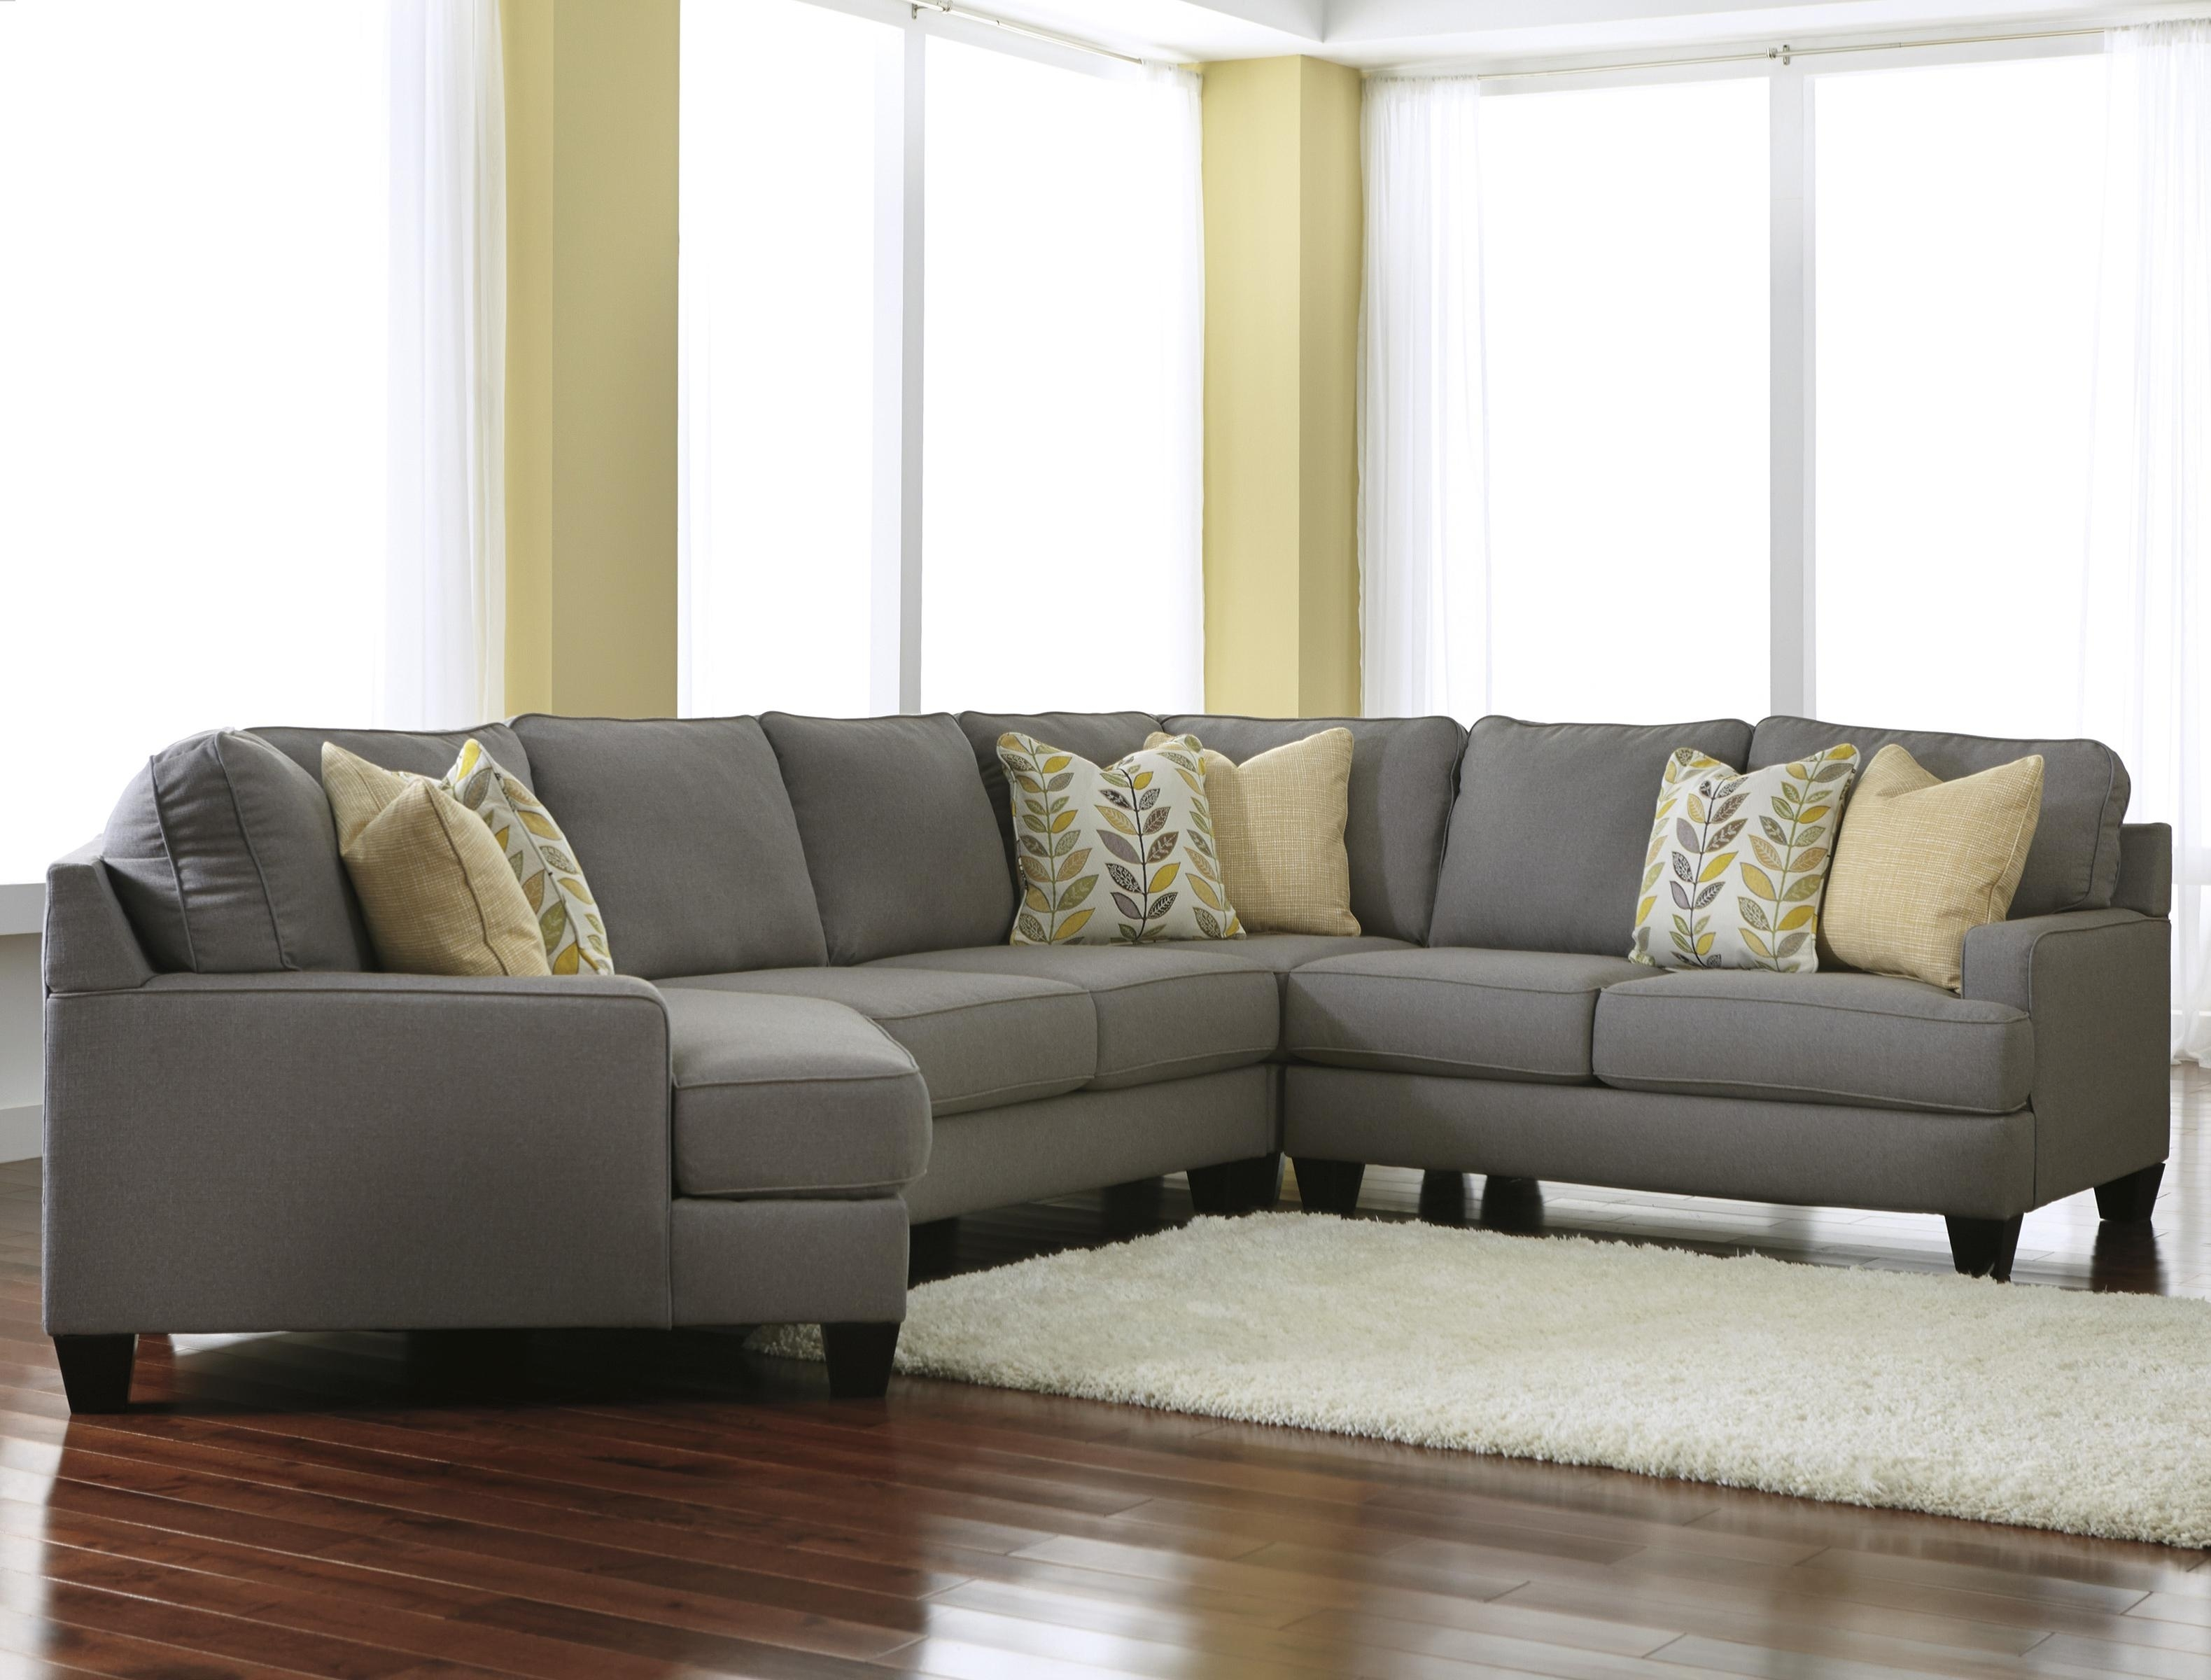 Signature Designashley Chamberly – Alloy Modern 4 Piece For Sectional Sofas With Cuddler (View 6 of 10)